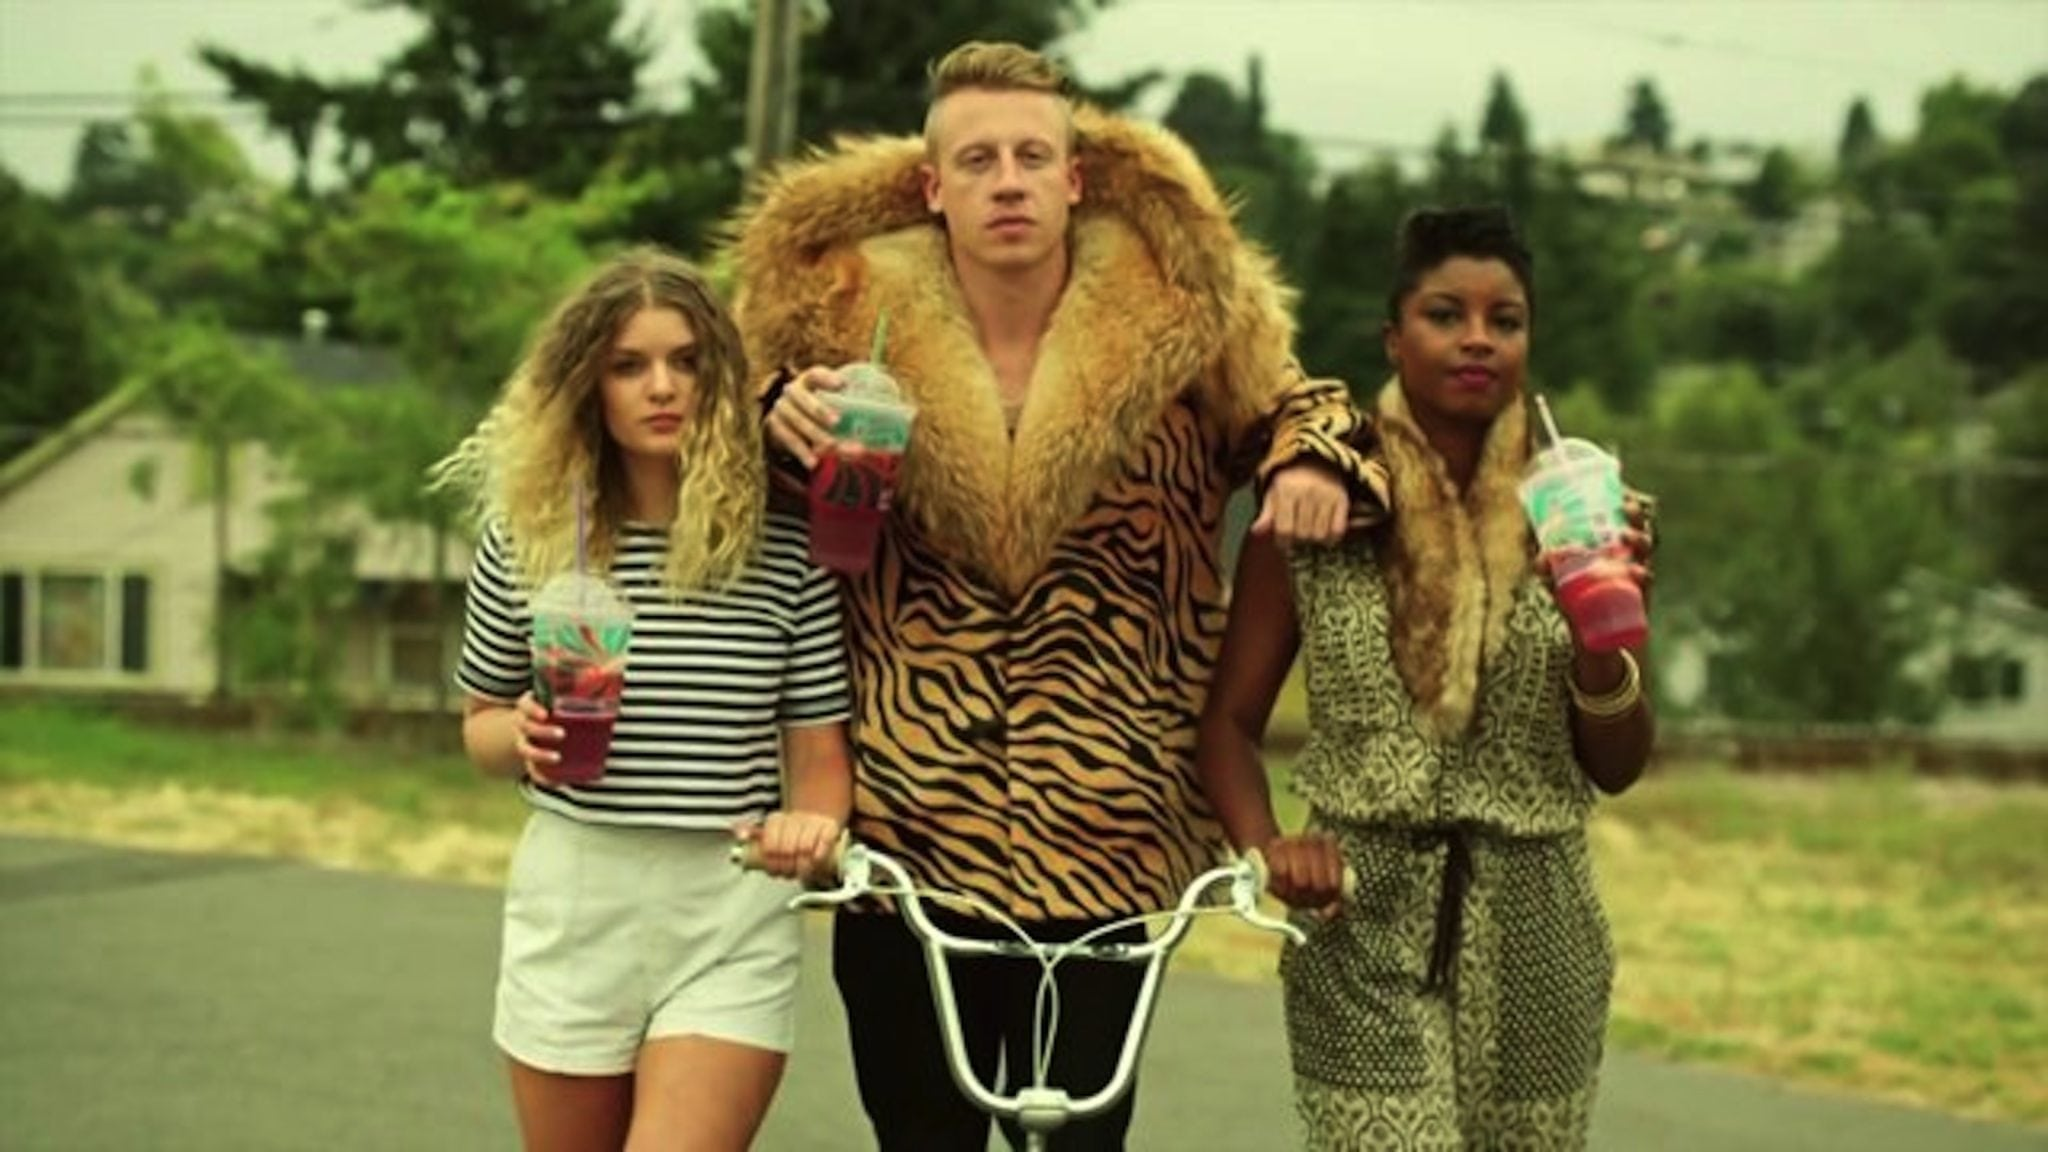 macklemore, poppin tags, bragging, urban man, dos and don'ts